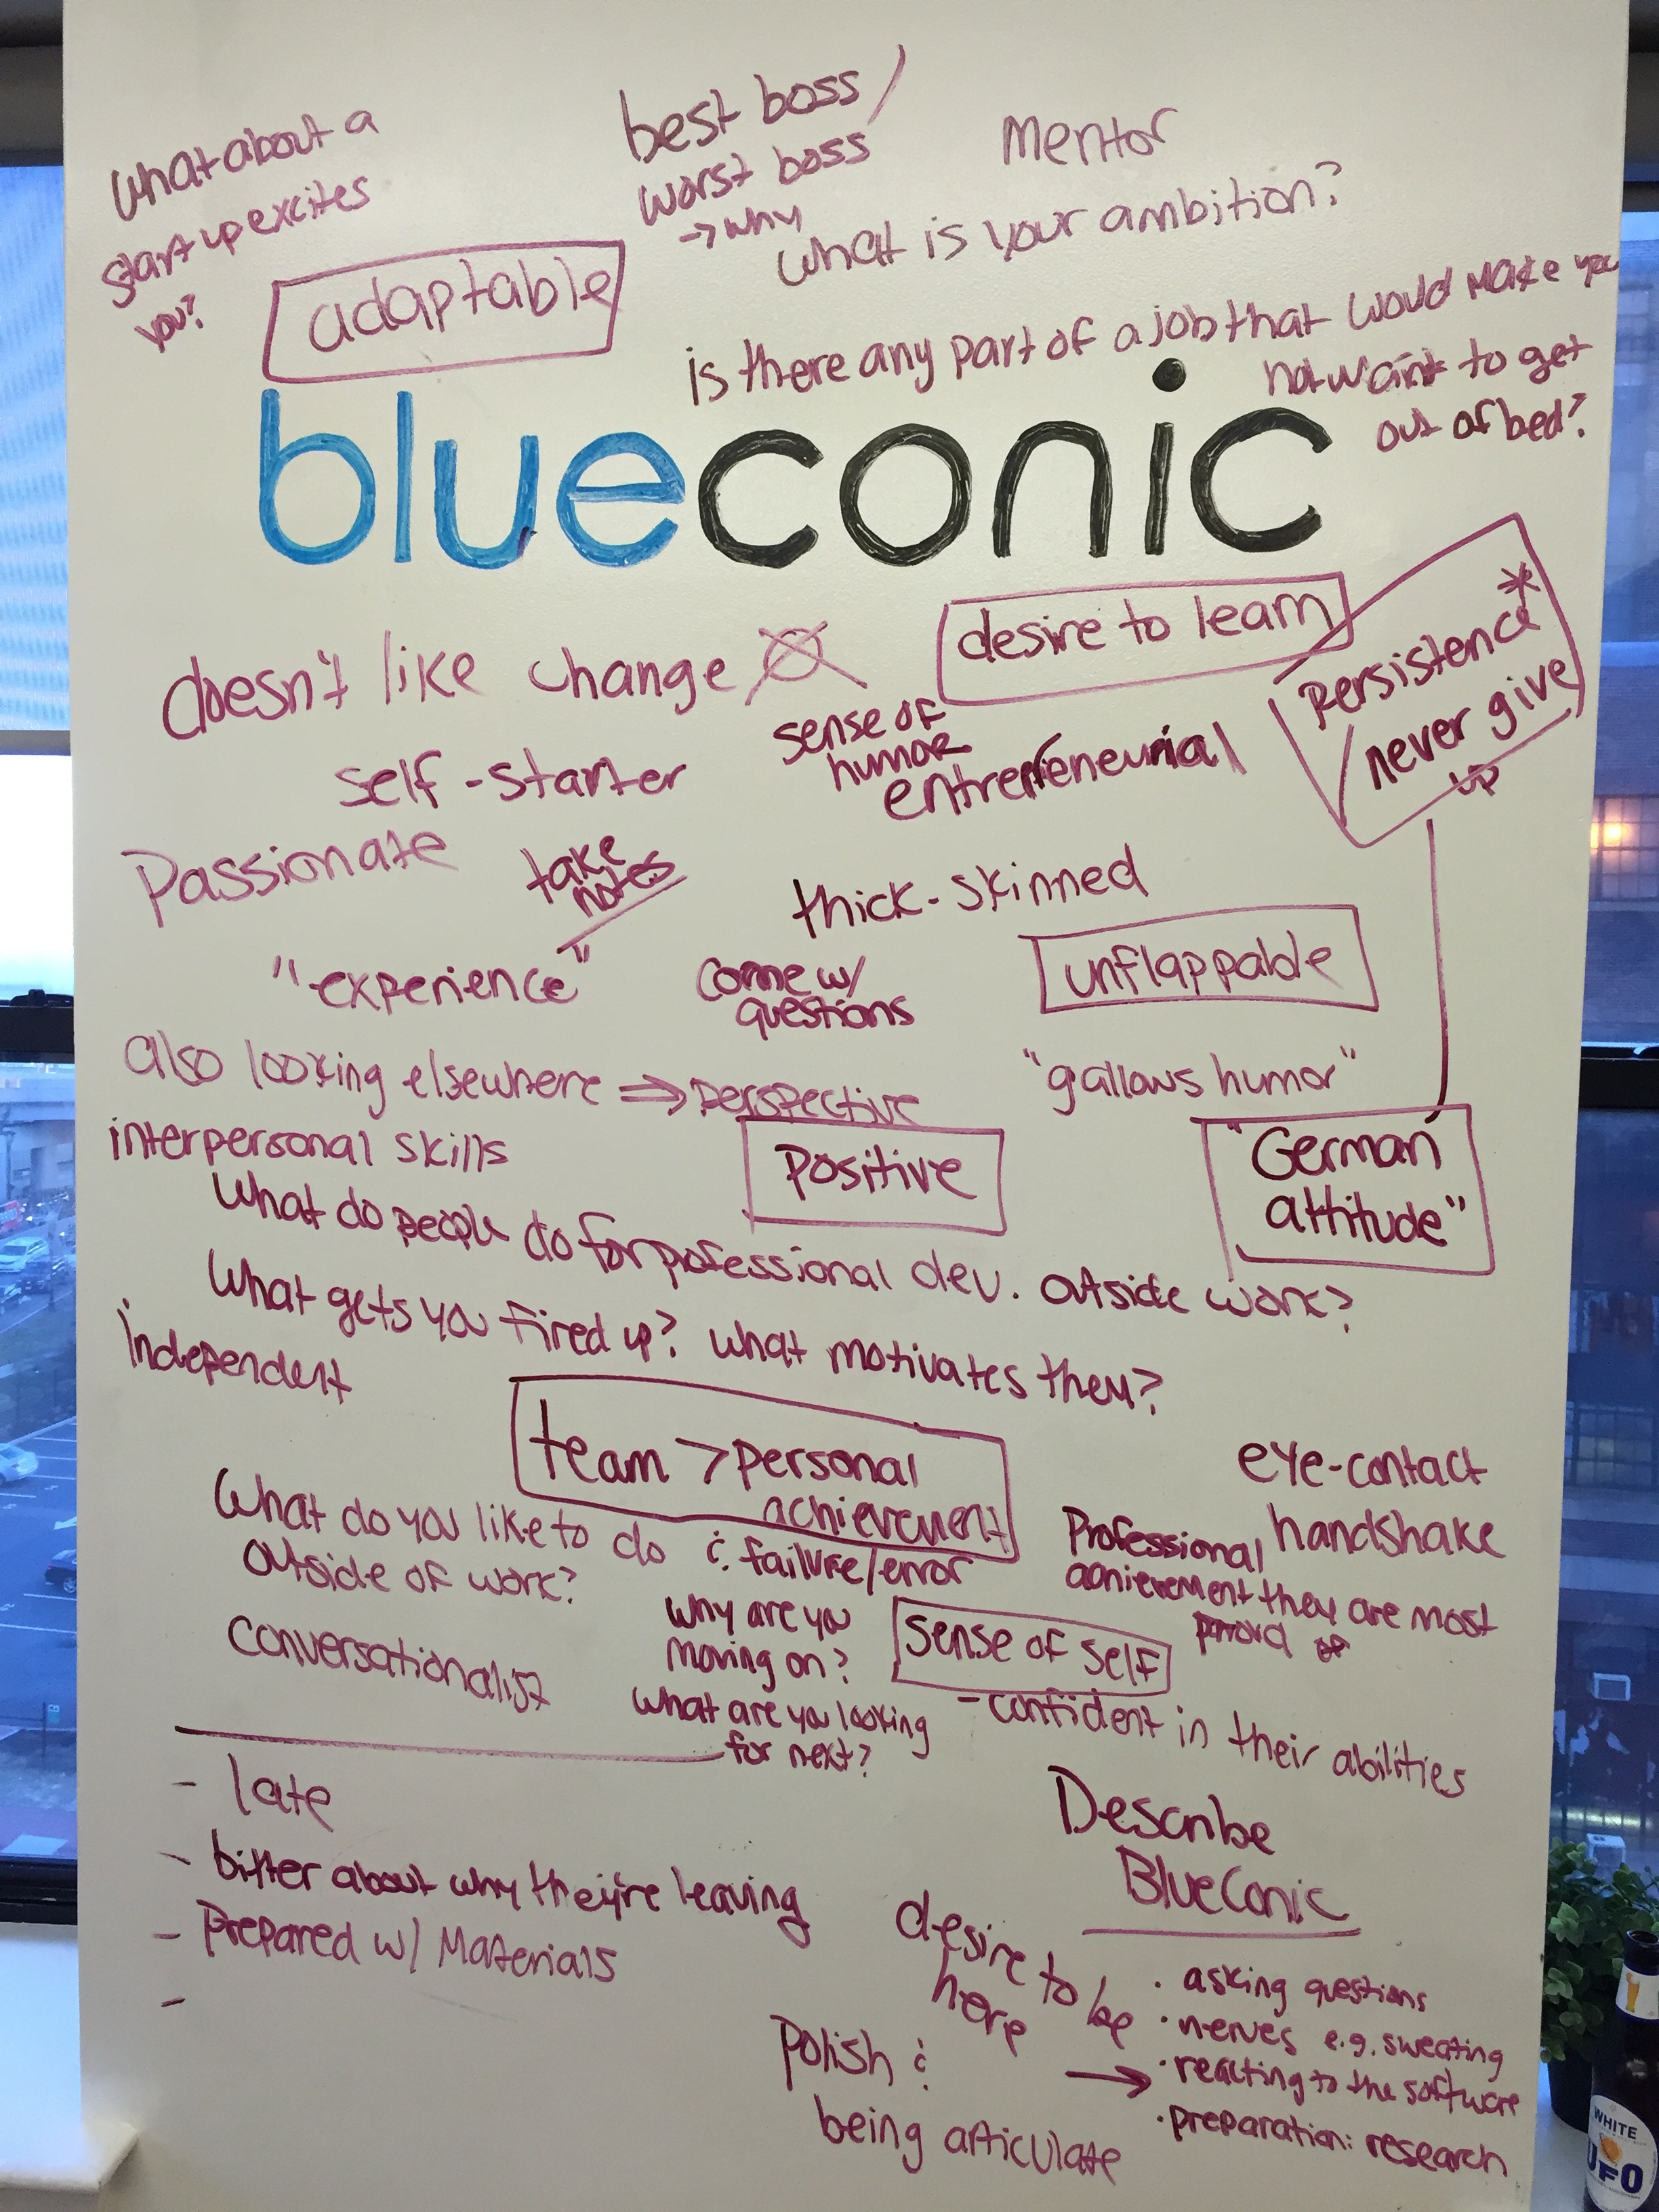 BlueConic Building The Dream